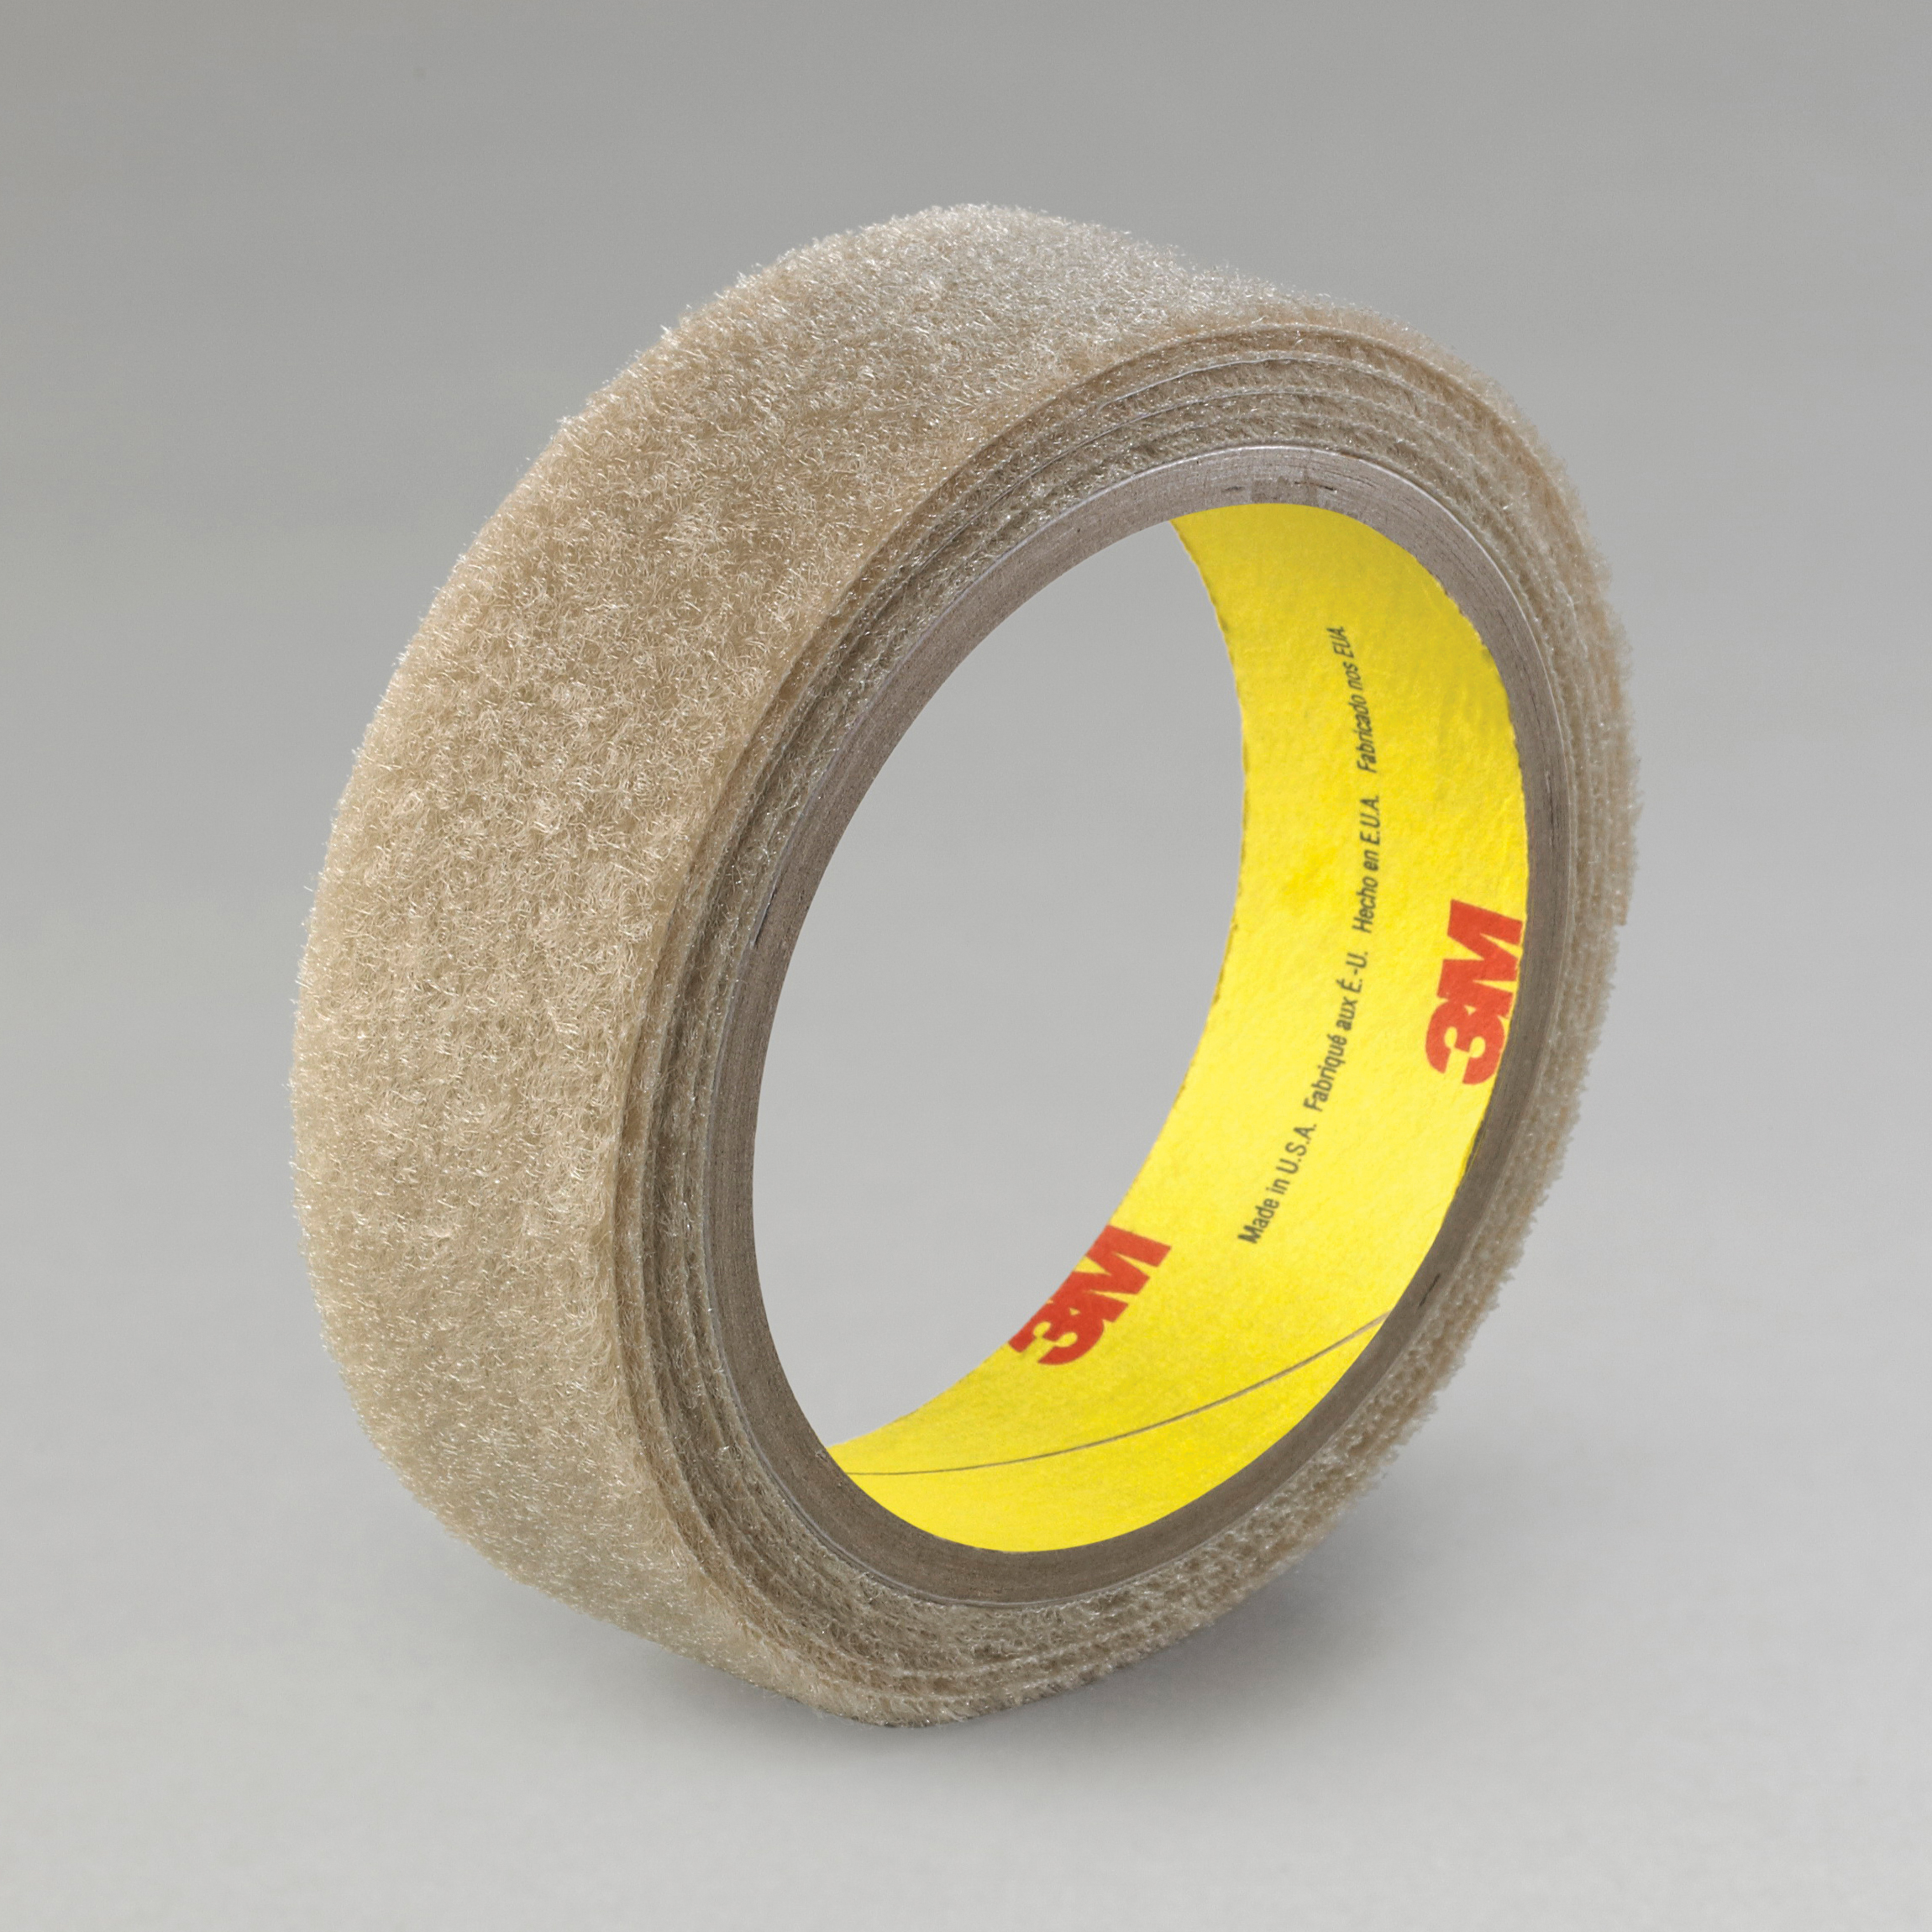 3M™ 021200-86254 Reclosable Loop Fastener Tape, 50 yd L x 2 in W, 0.15 in THK Engaged, Polyethylene Film Liner Adhesive, Woven Nylon Backing, Beige